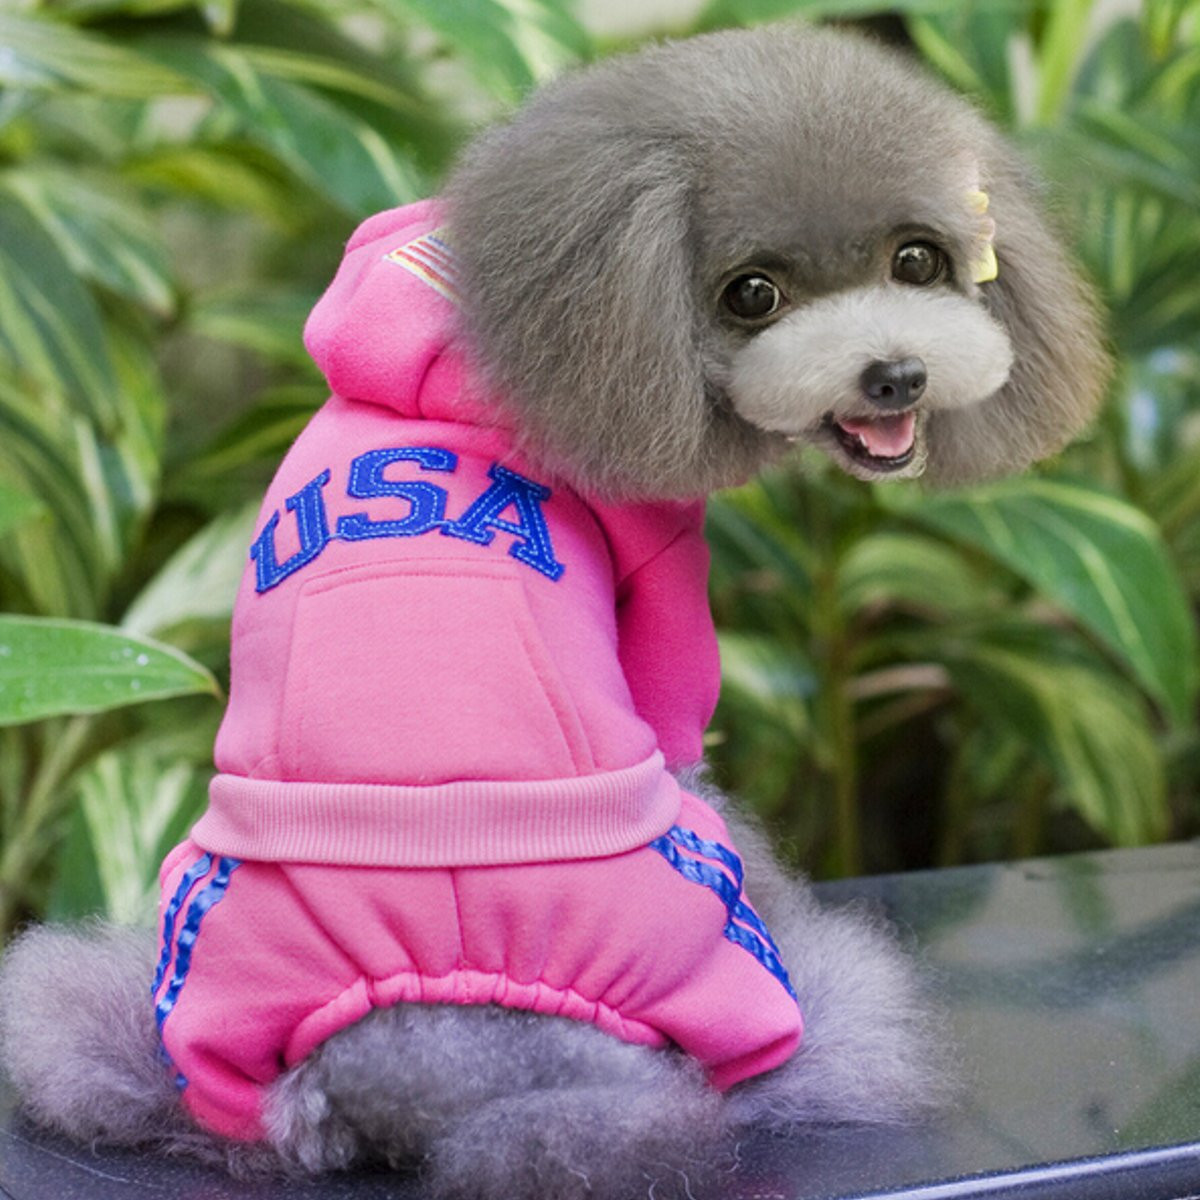 Pet Puppy Dog Clothes Winter Warm Jacket Coat Clothes Apparel Dog Clothes Hoodie Sweater Costumes